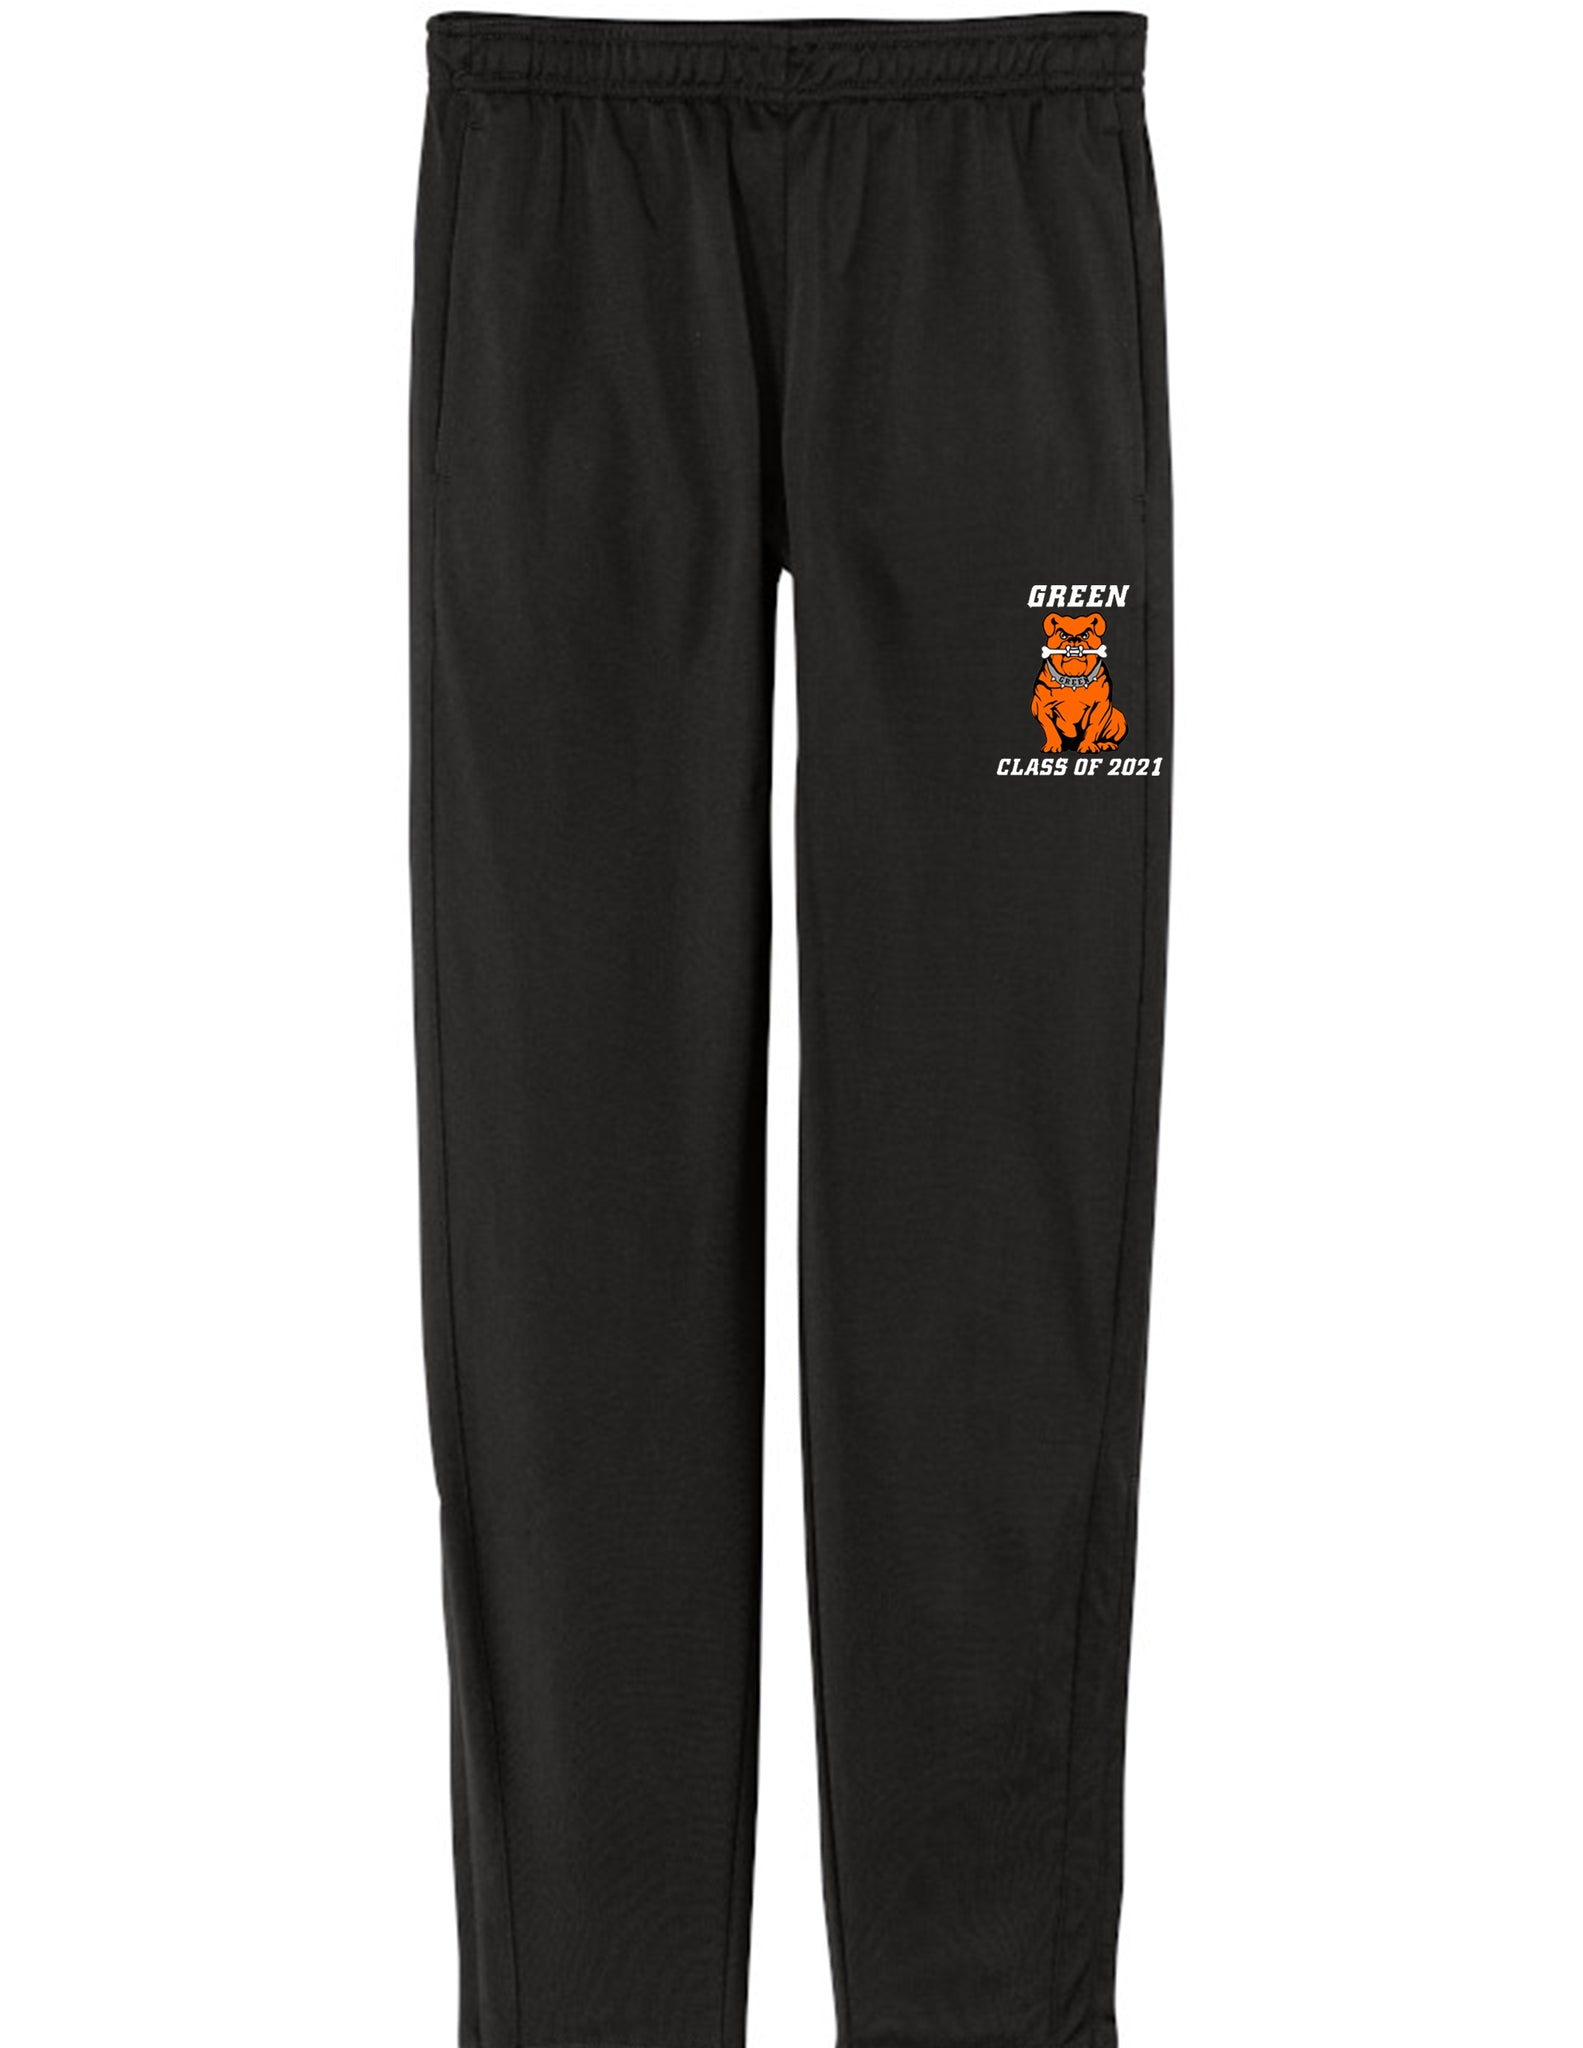 Green Class of 2021 Men's Jogger Pants